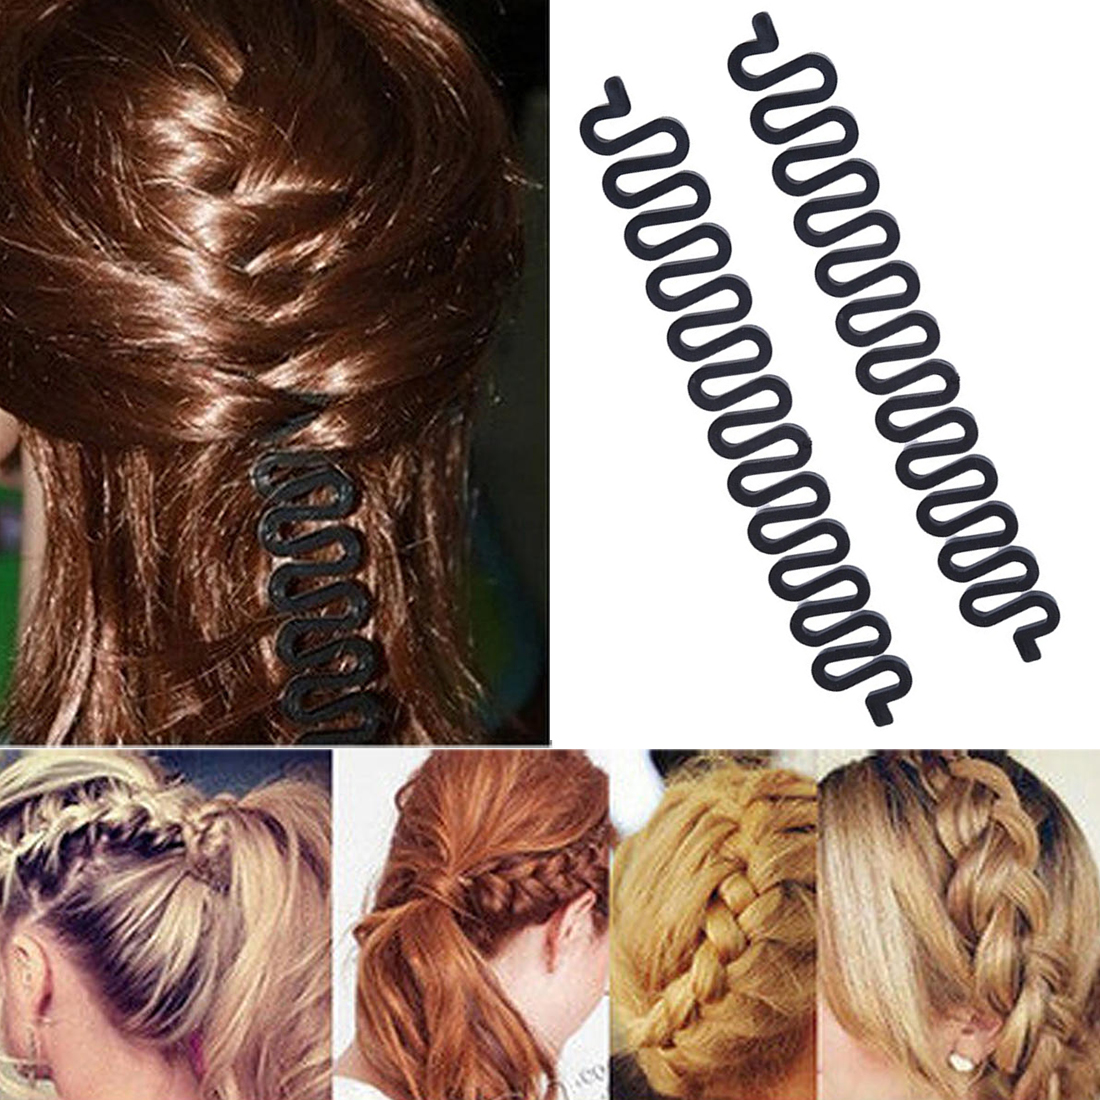 Disk Device Tress Barber Accessories Braided Artifact Lazy Hair Tools Hairpin Accessories Salon Accessories